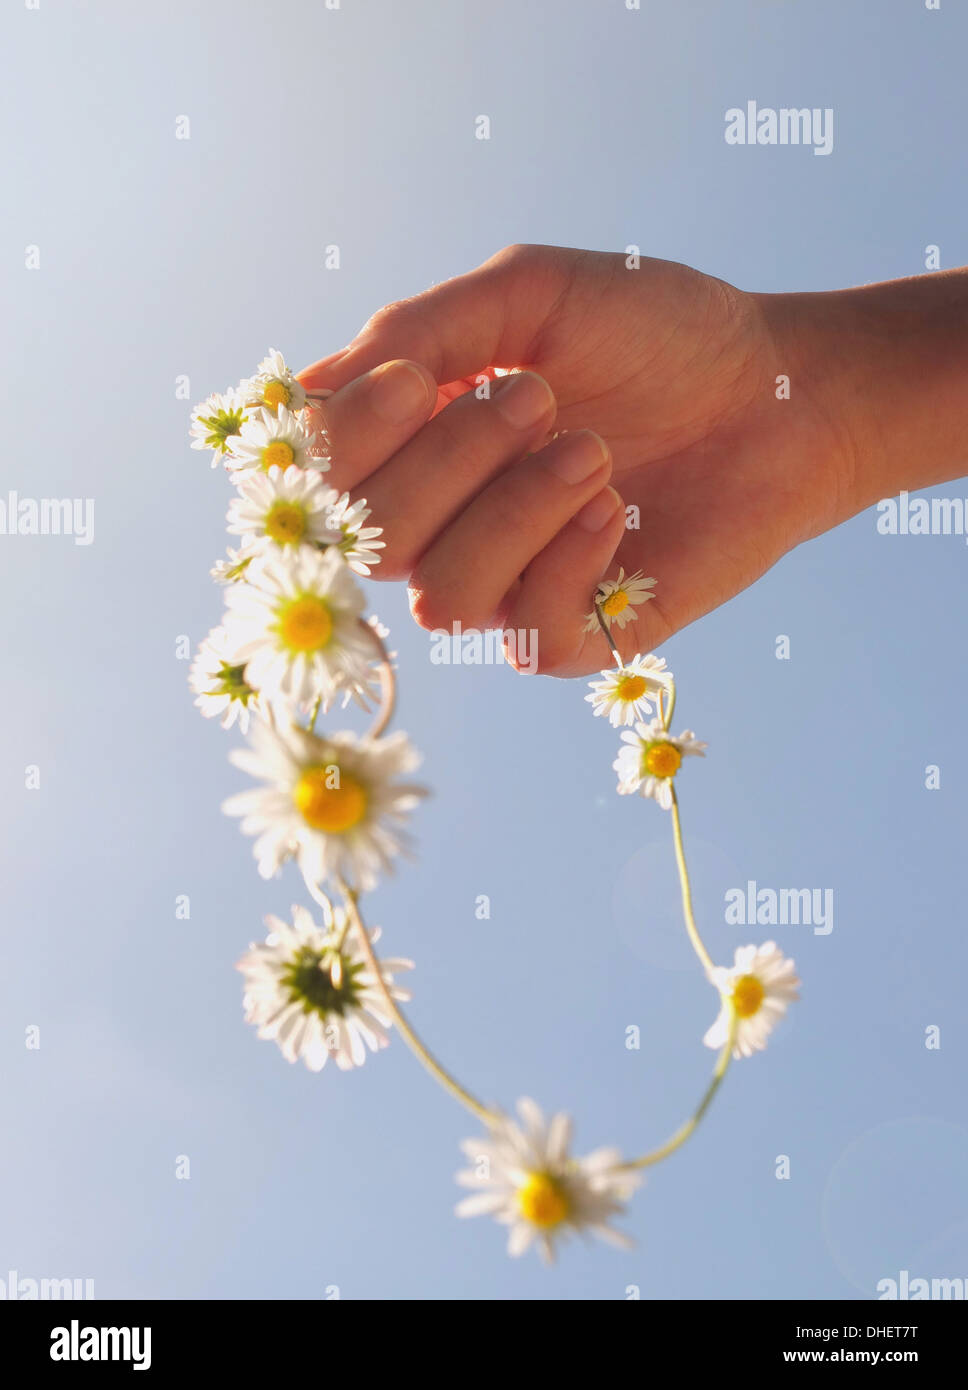 Cropped hand holding daisy chain Photo Stock